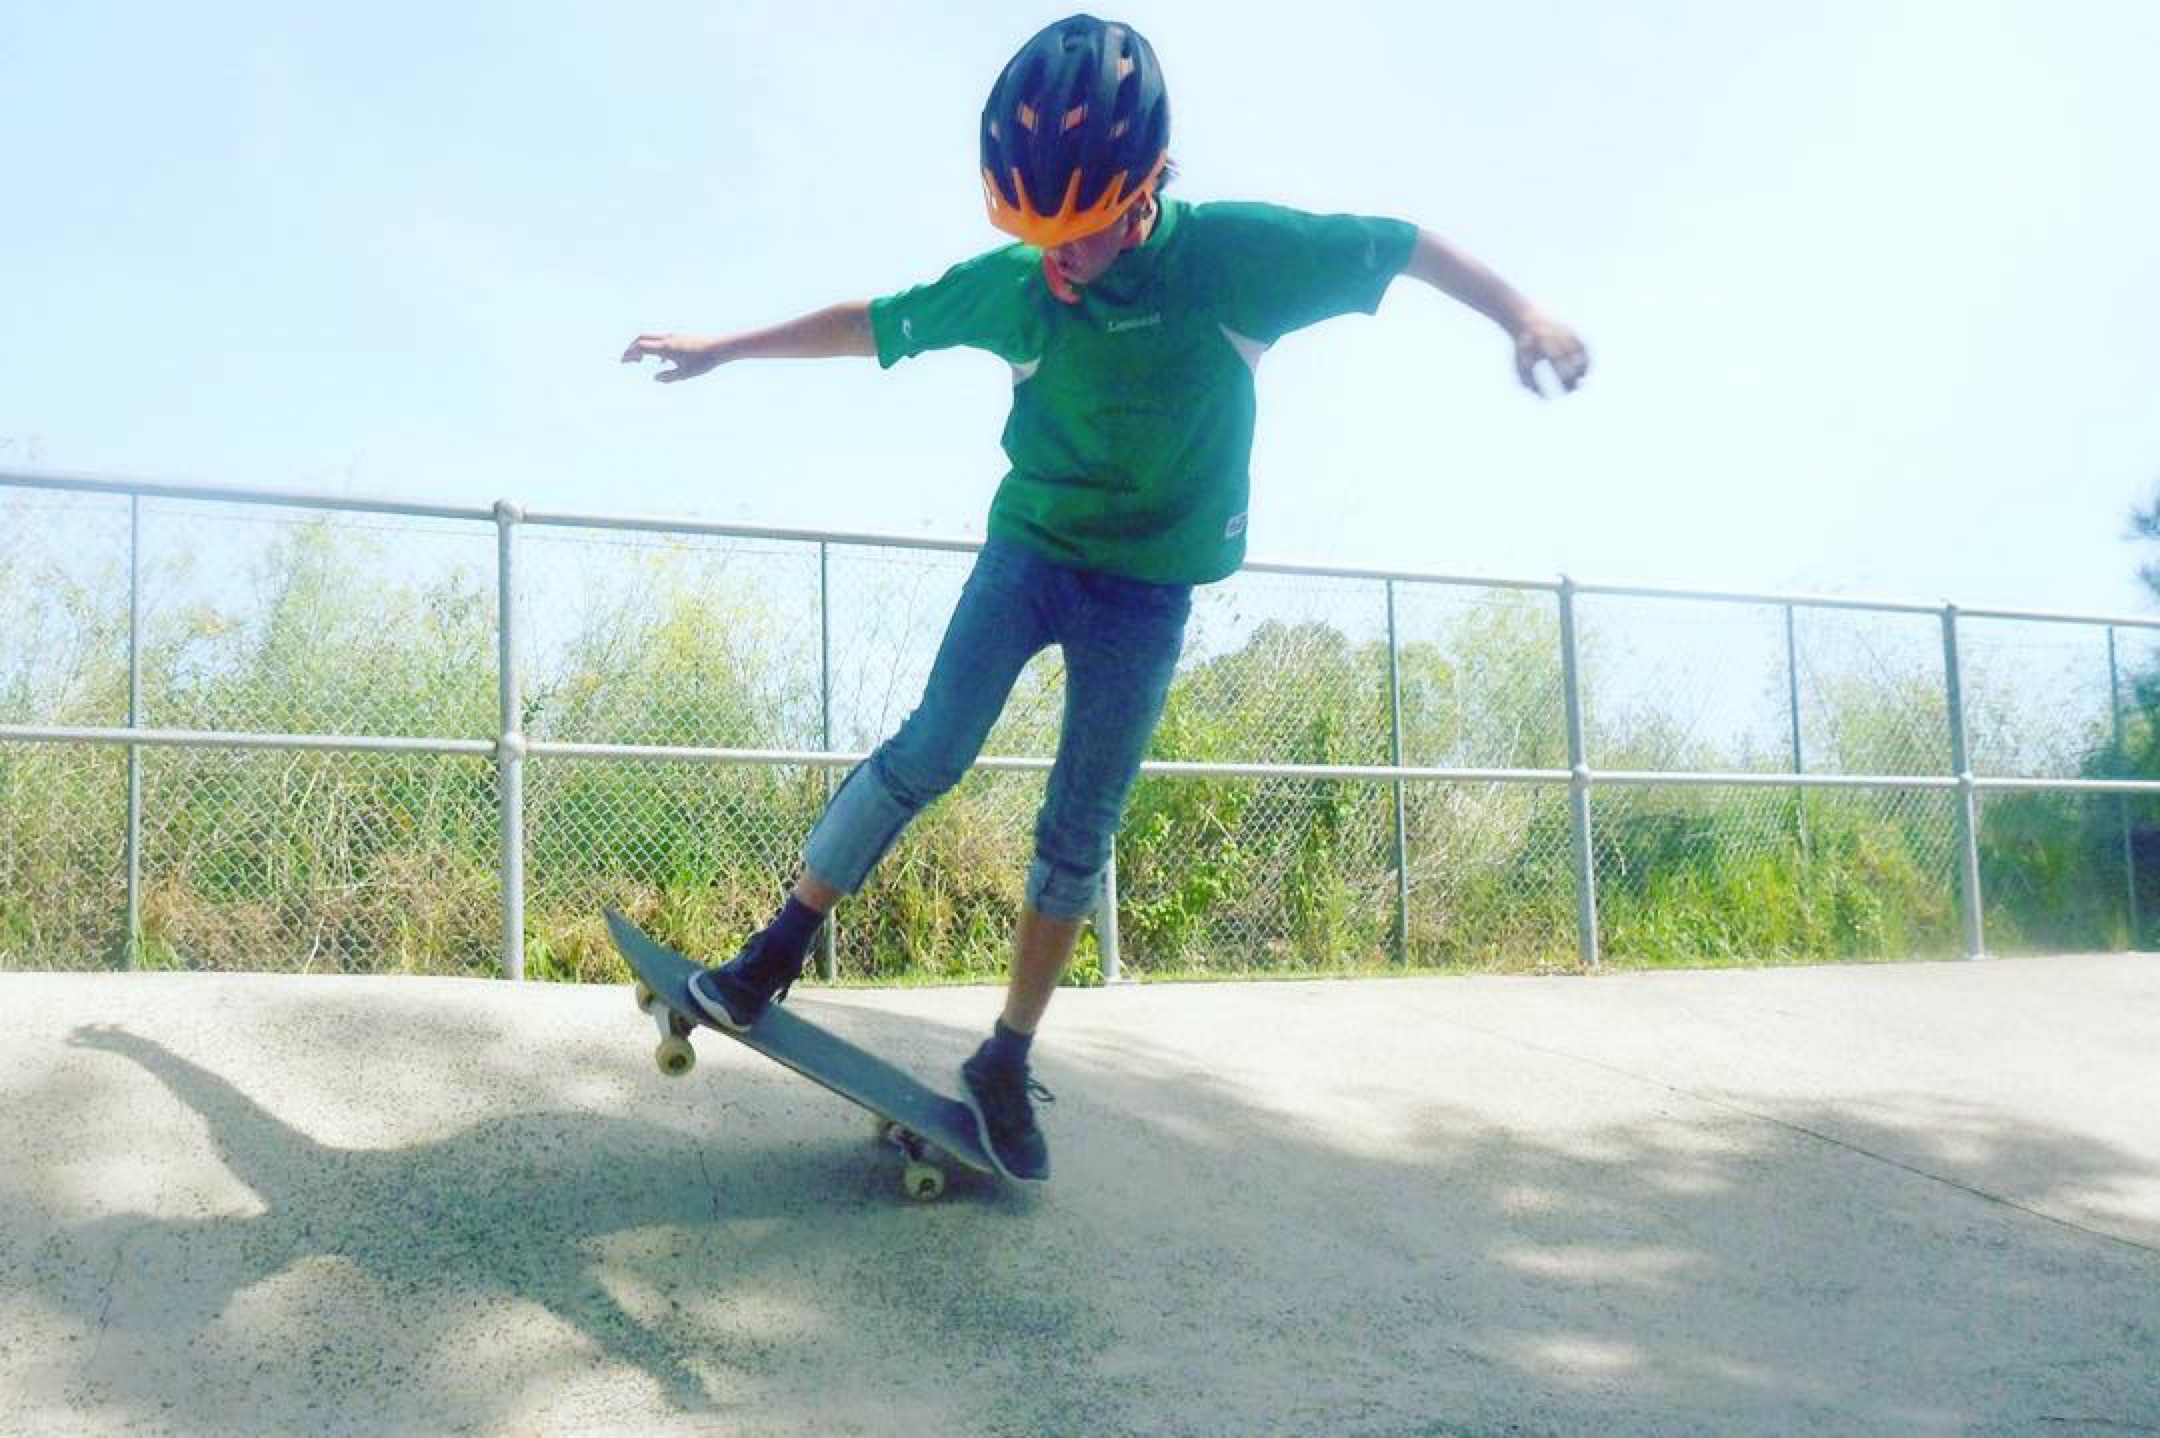 A young skater riding Dulwich Hill skatepark at a Skate Now skateboarding lesson